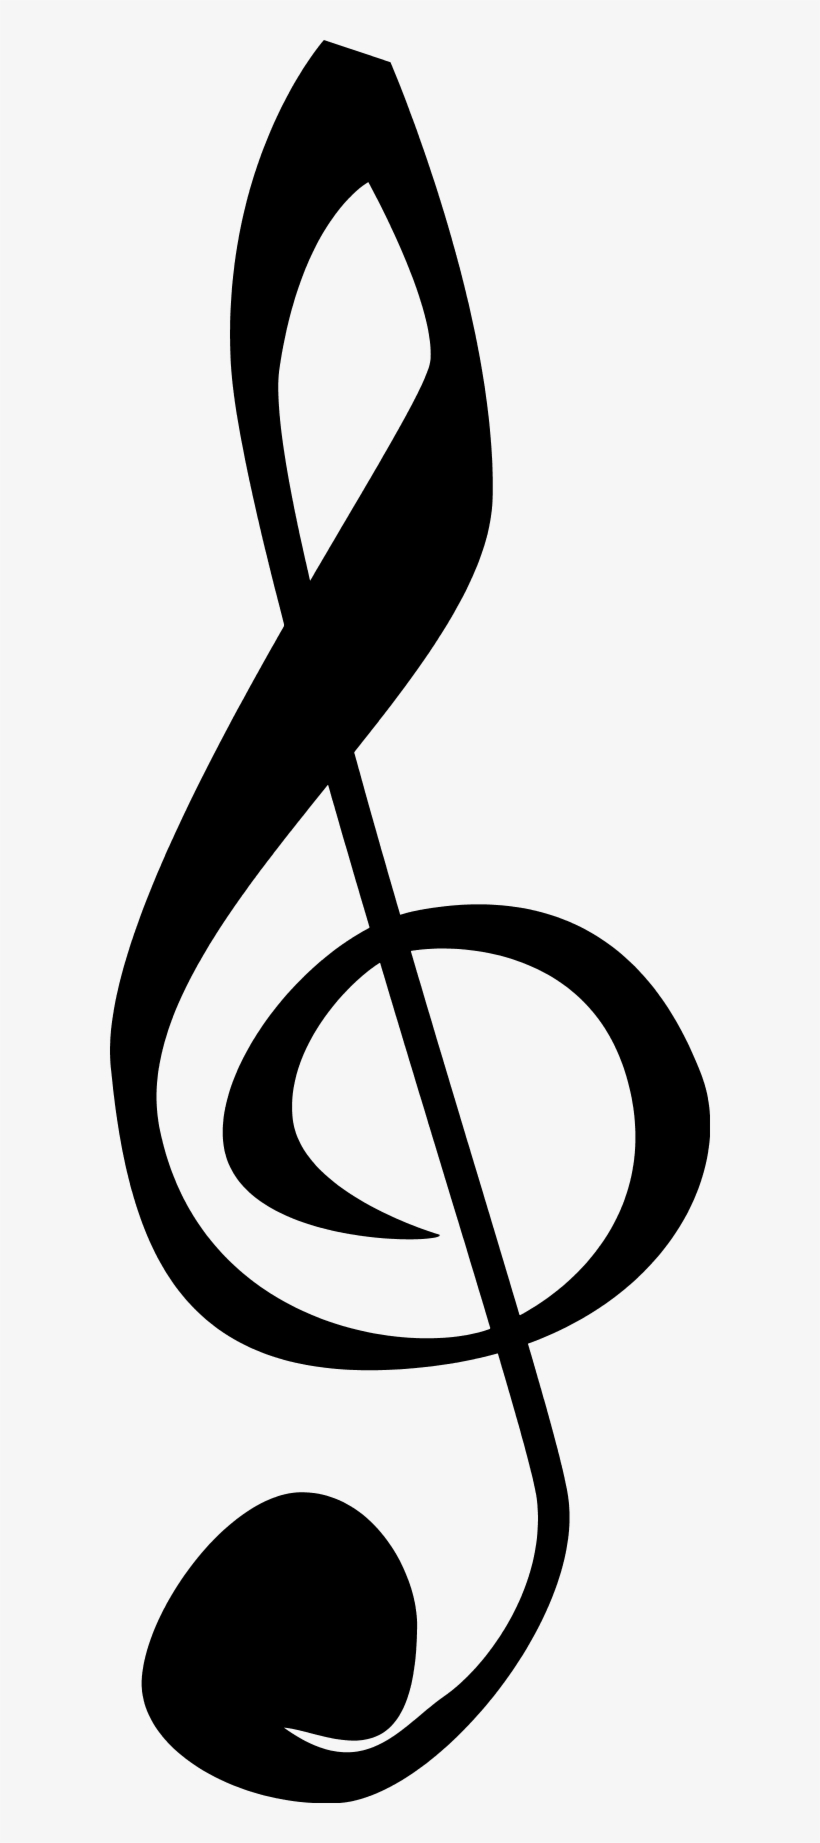 Treble Staff Clipart - Music Symbols, transparent png #27647